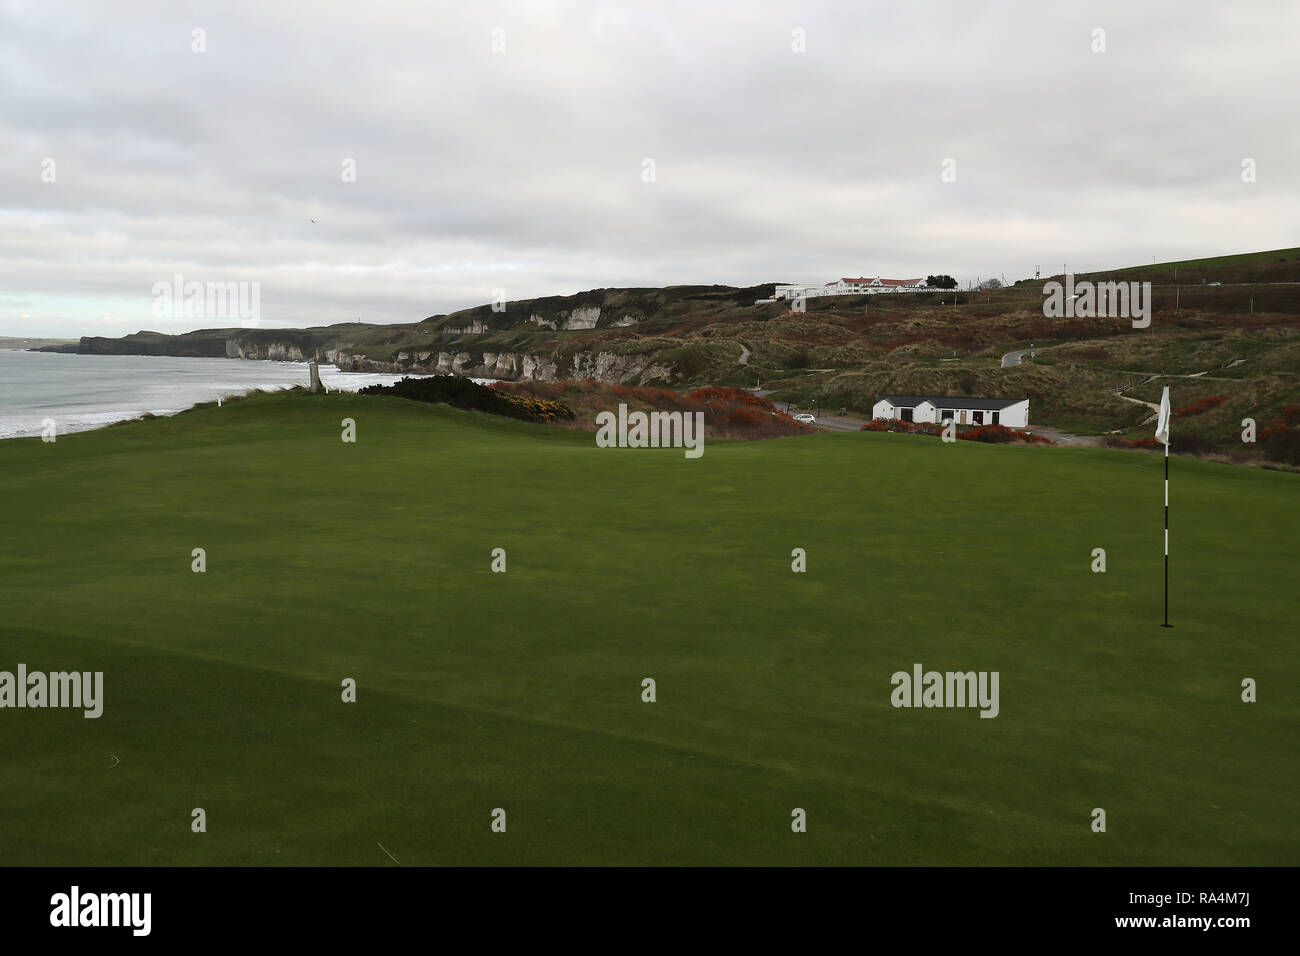 The 6th green of the course at Royal Portrush Golf Club in Co. Antrim. The organisers of golf's Open Championship have said they are staggered by the level of interest in the tournament's historic return to Northern Ireland. - Stock Image